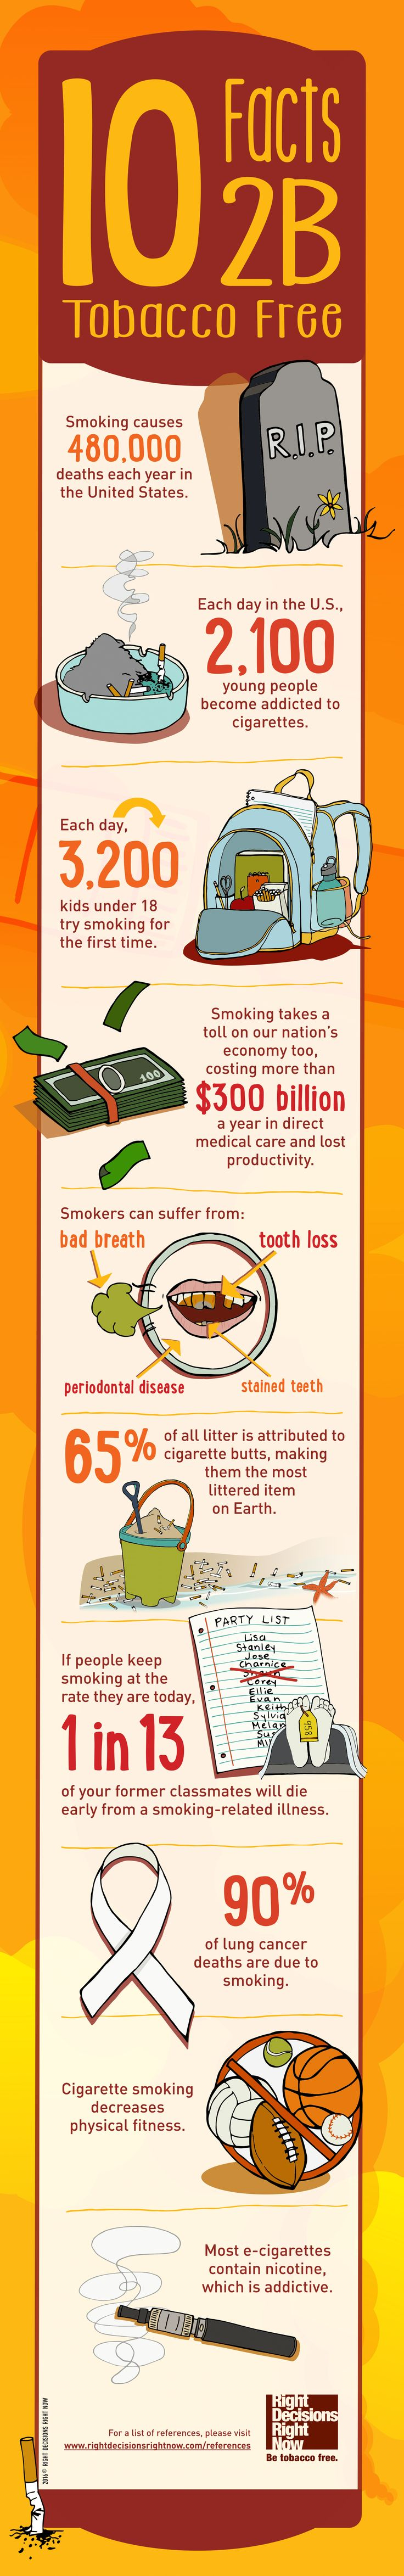 Best 25+ Anti tobacco ideas on Pinterest | Anti smoking ...